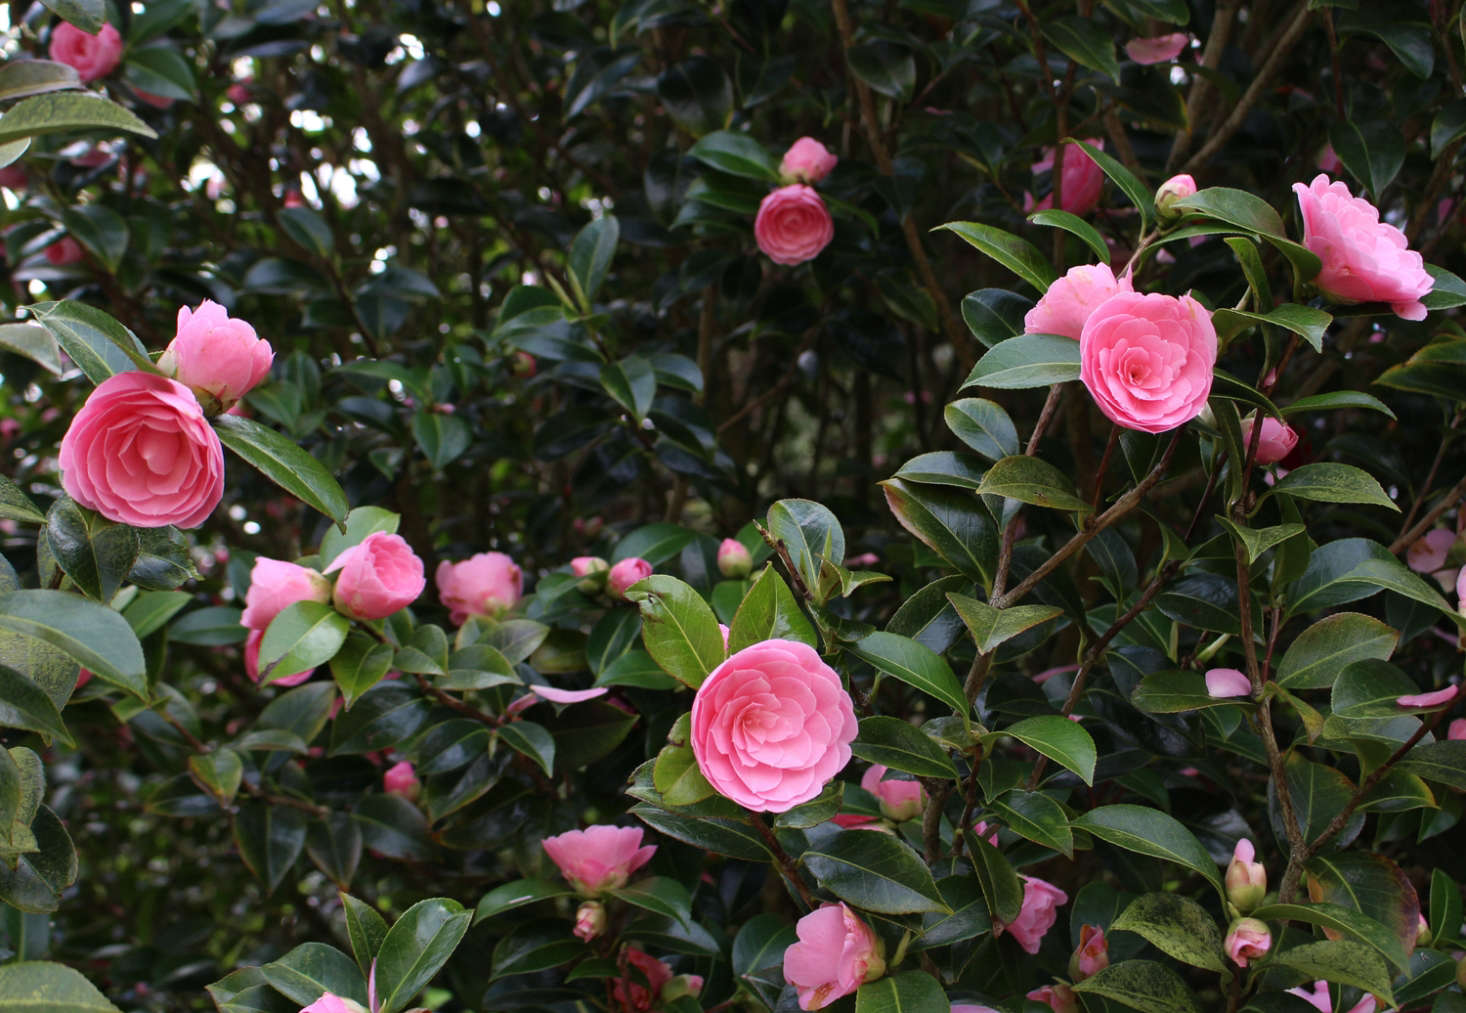 'E.G. Waterhouse', a Williams-raised camellia growing along the driveway where it was raised, at Caerhays Castle in Cornwall. Photograph by Kendra Wilson, from Landscaping Ideas: The Case for Camellias.